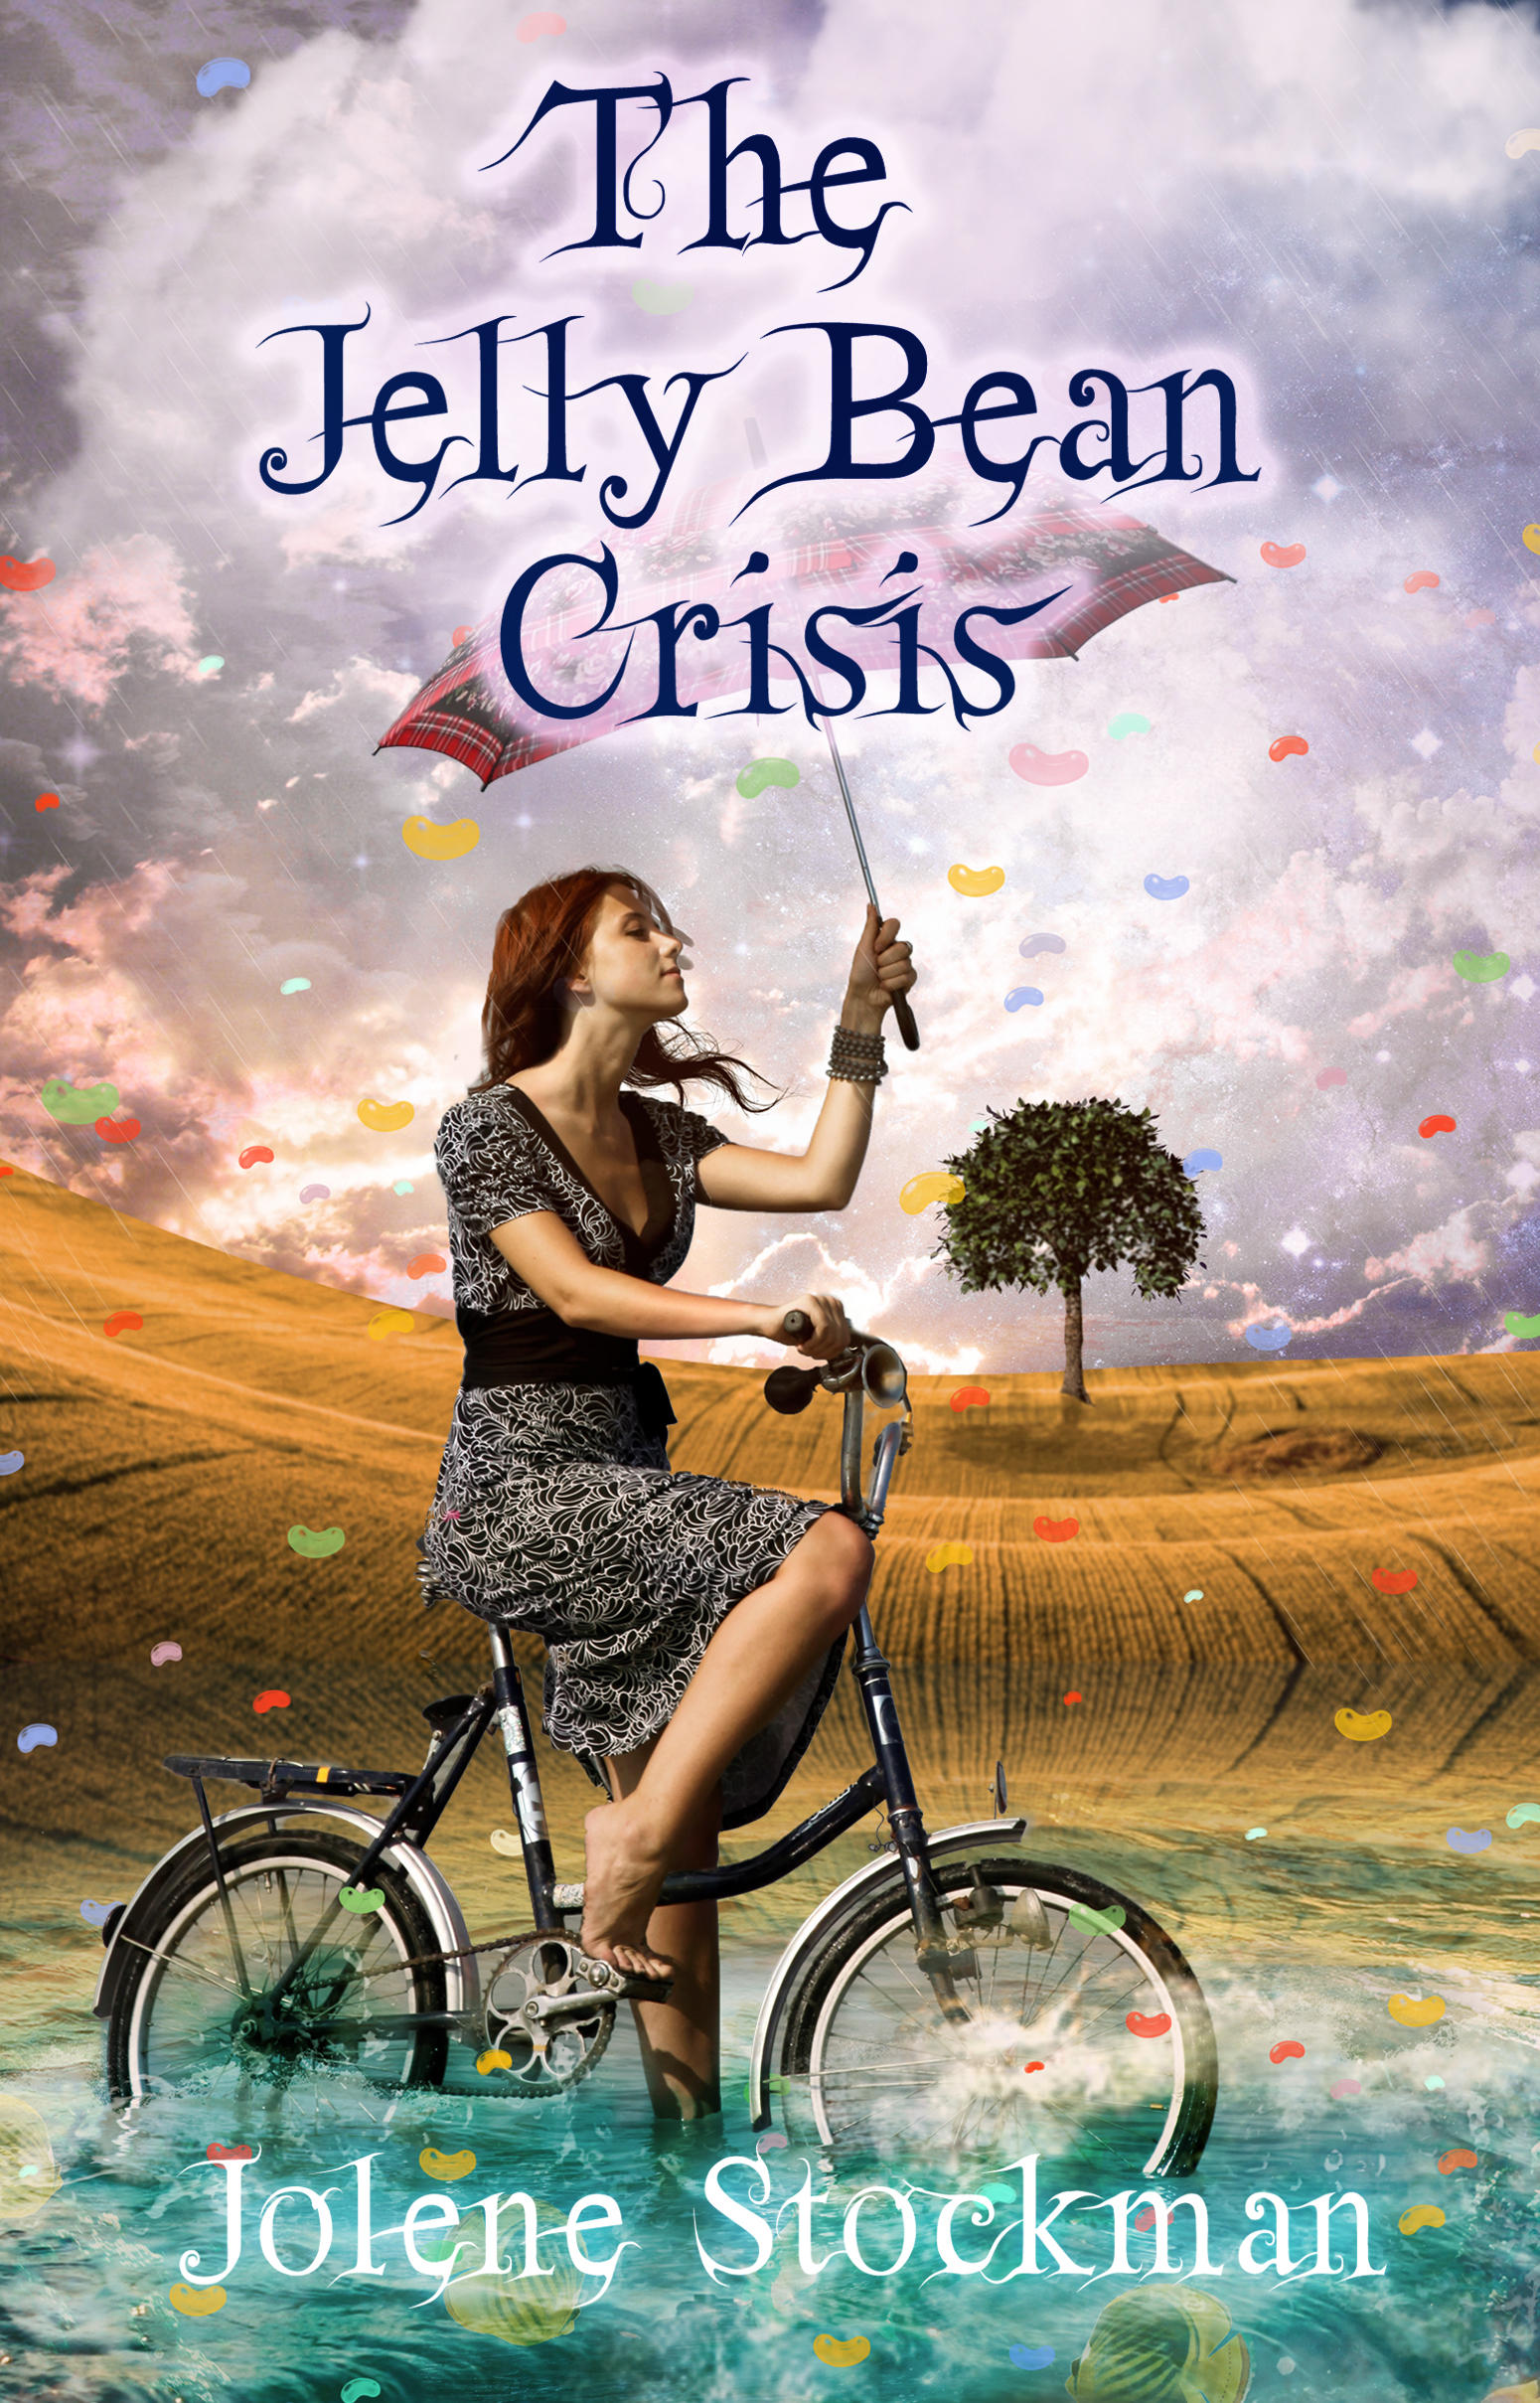 The Jelly Bean Crisis by Jolene Stockman